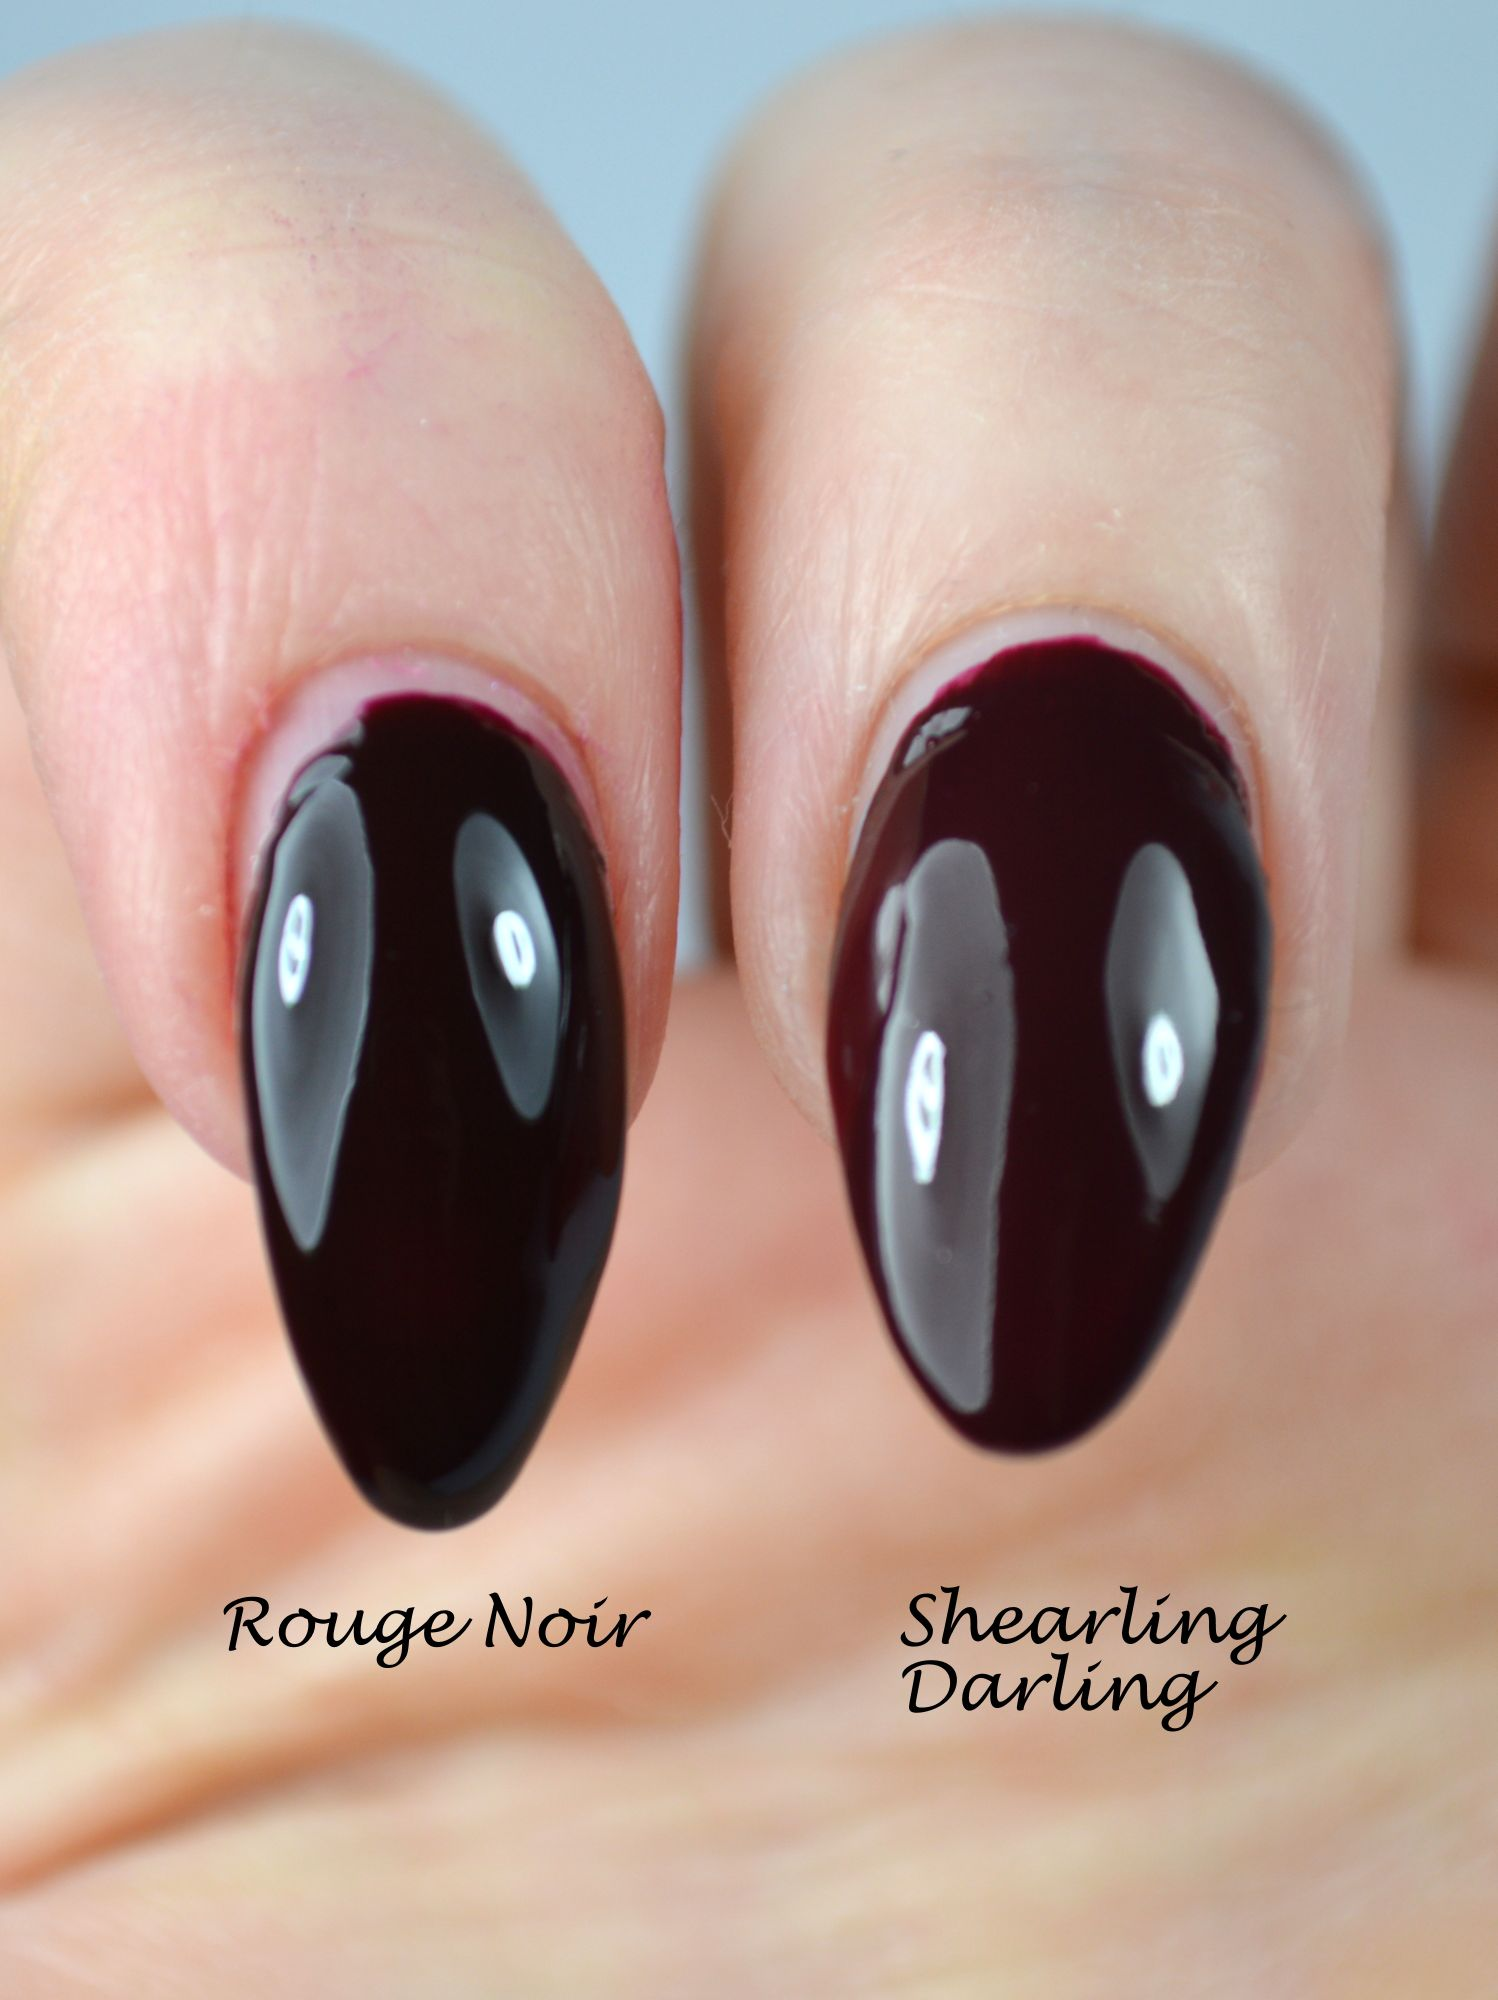 Essie Shearling Darling Chanel Rouge Noir Dupe